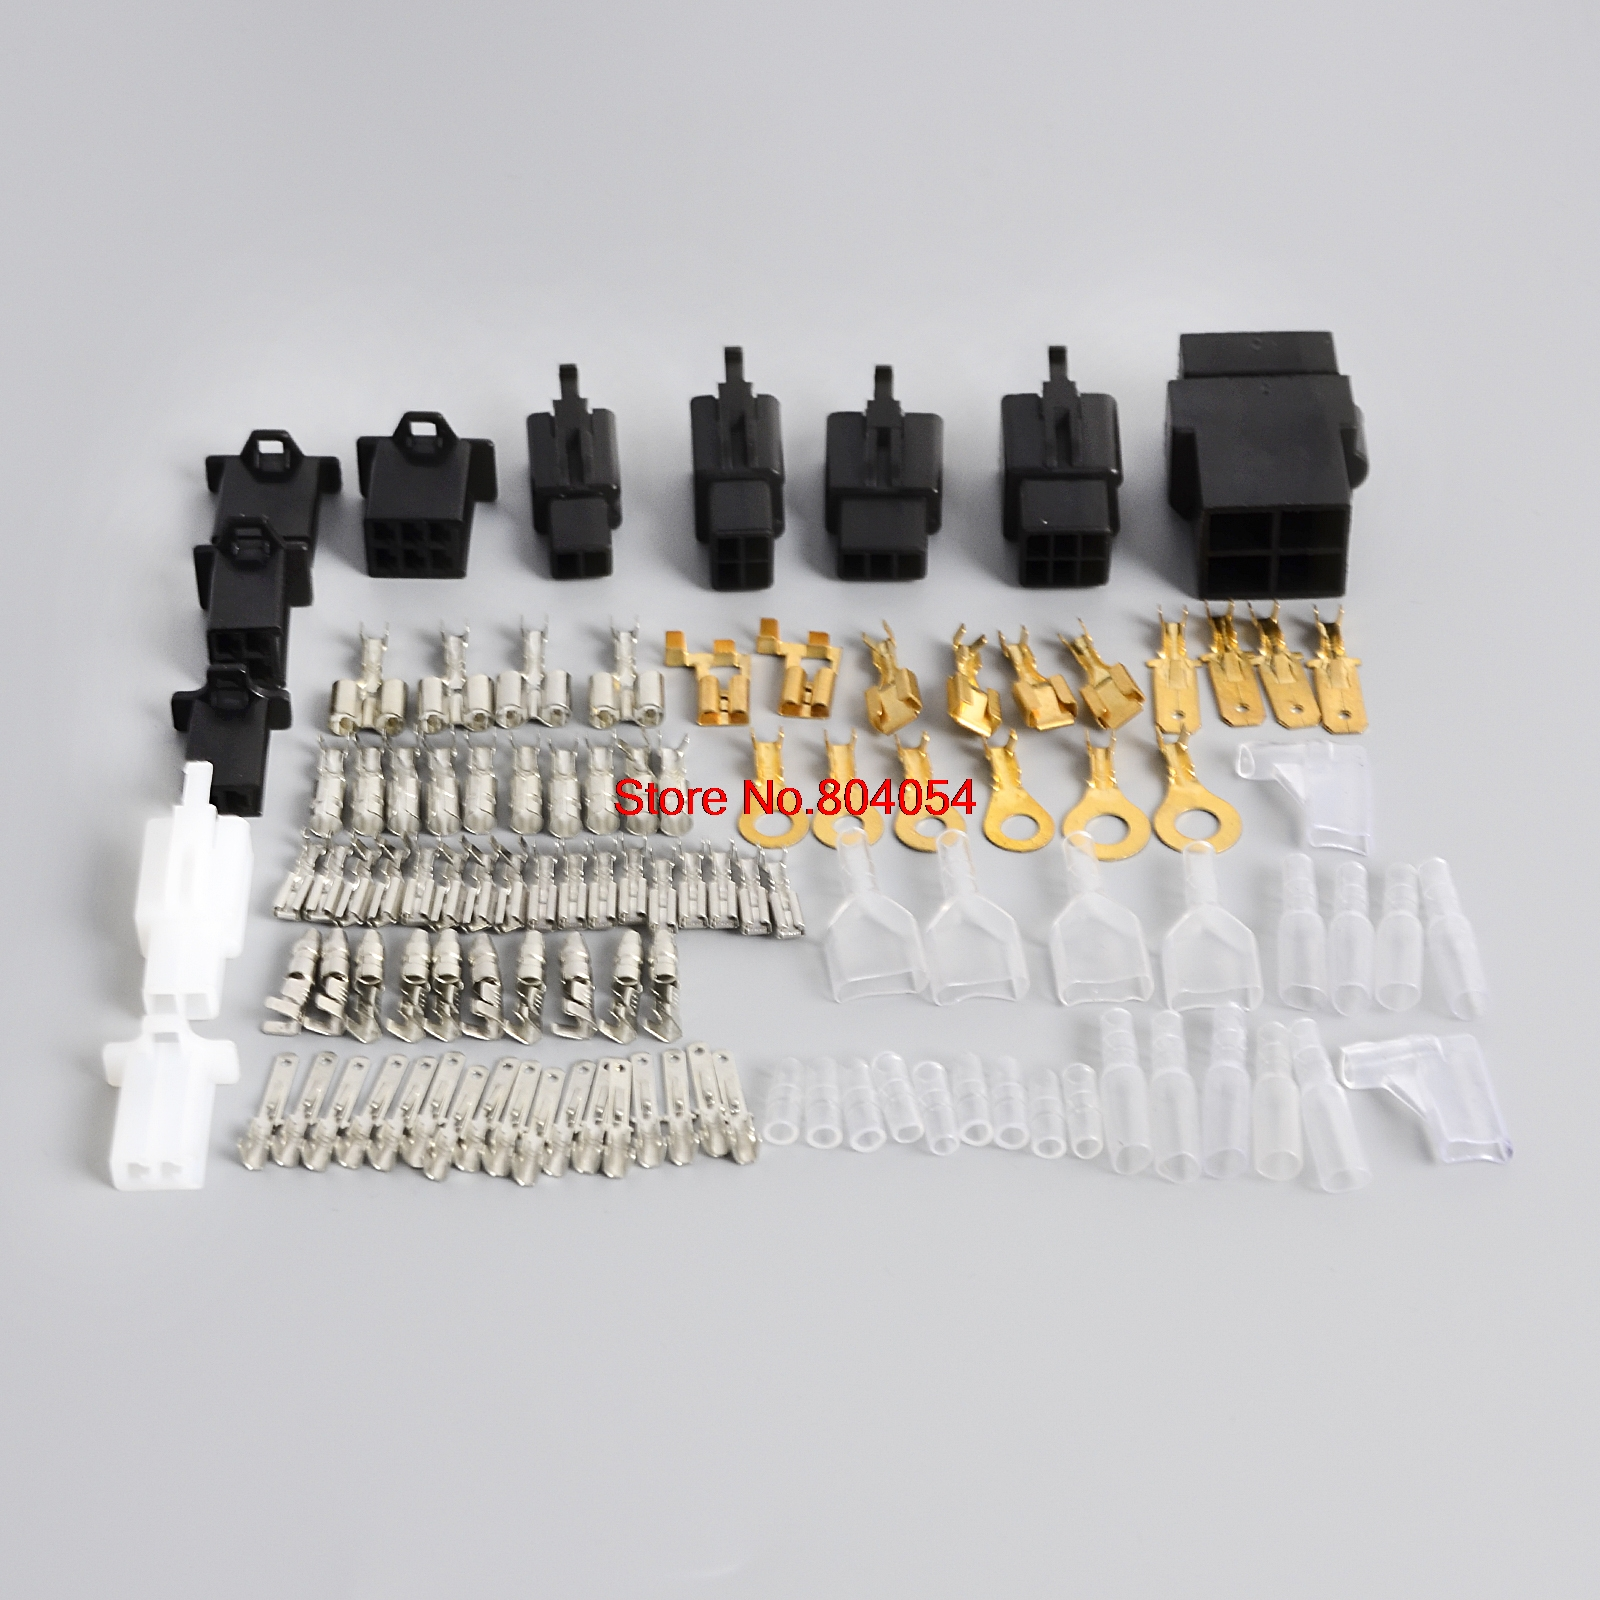 hight resolution of for honda yamaha kawasaki suzuki ducati motorcycle electrical wiring harness loom repair kit plugs bullets connectors in fuses from automobiles